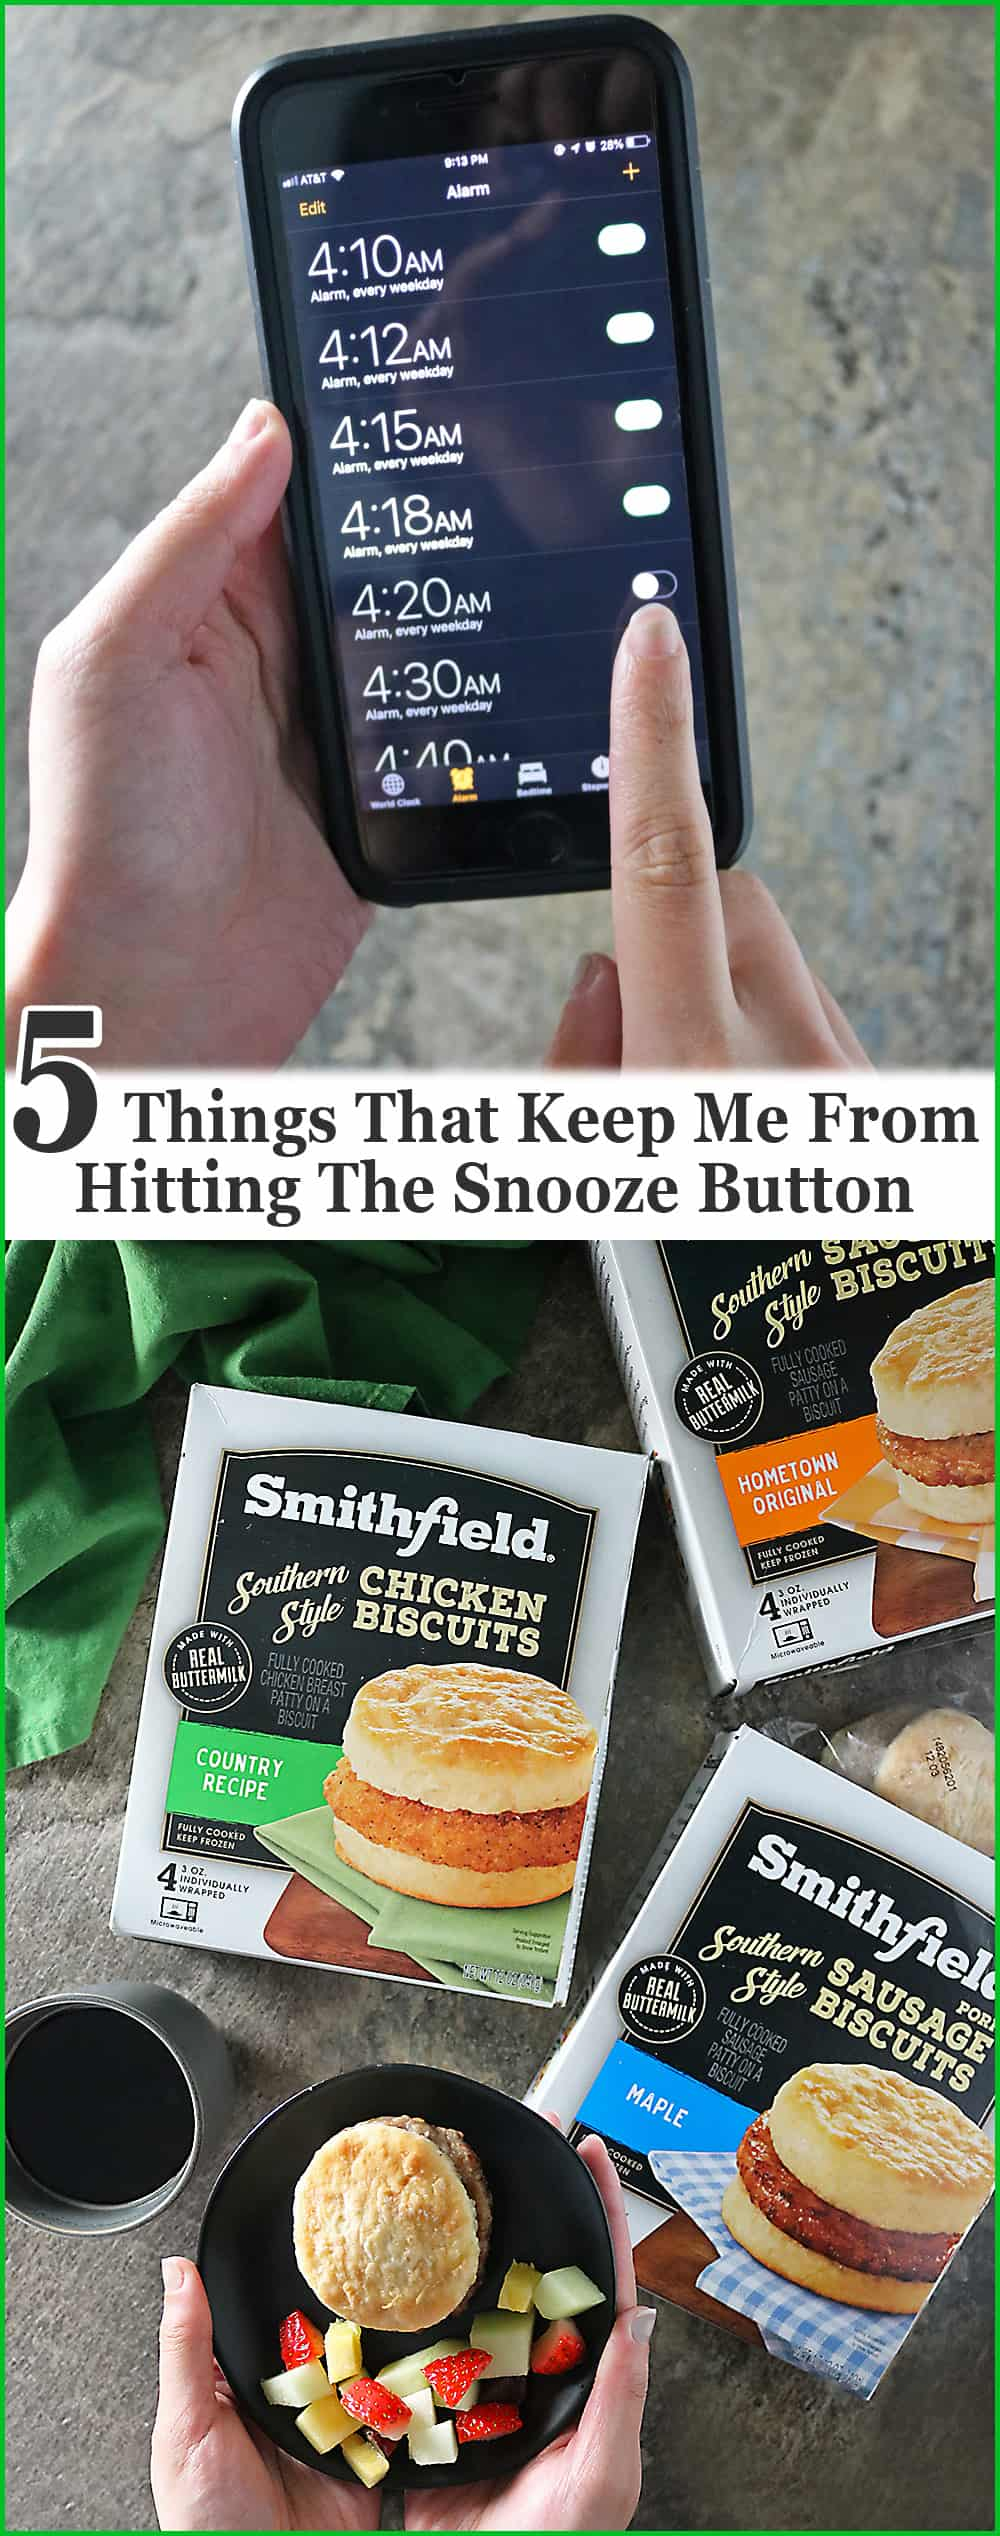 Photo 5 things that keep me from hitting the snooze button. #StartWithSmithfield